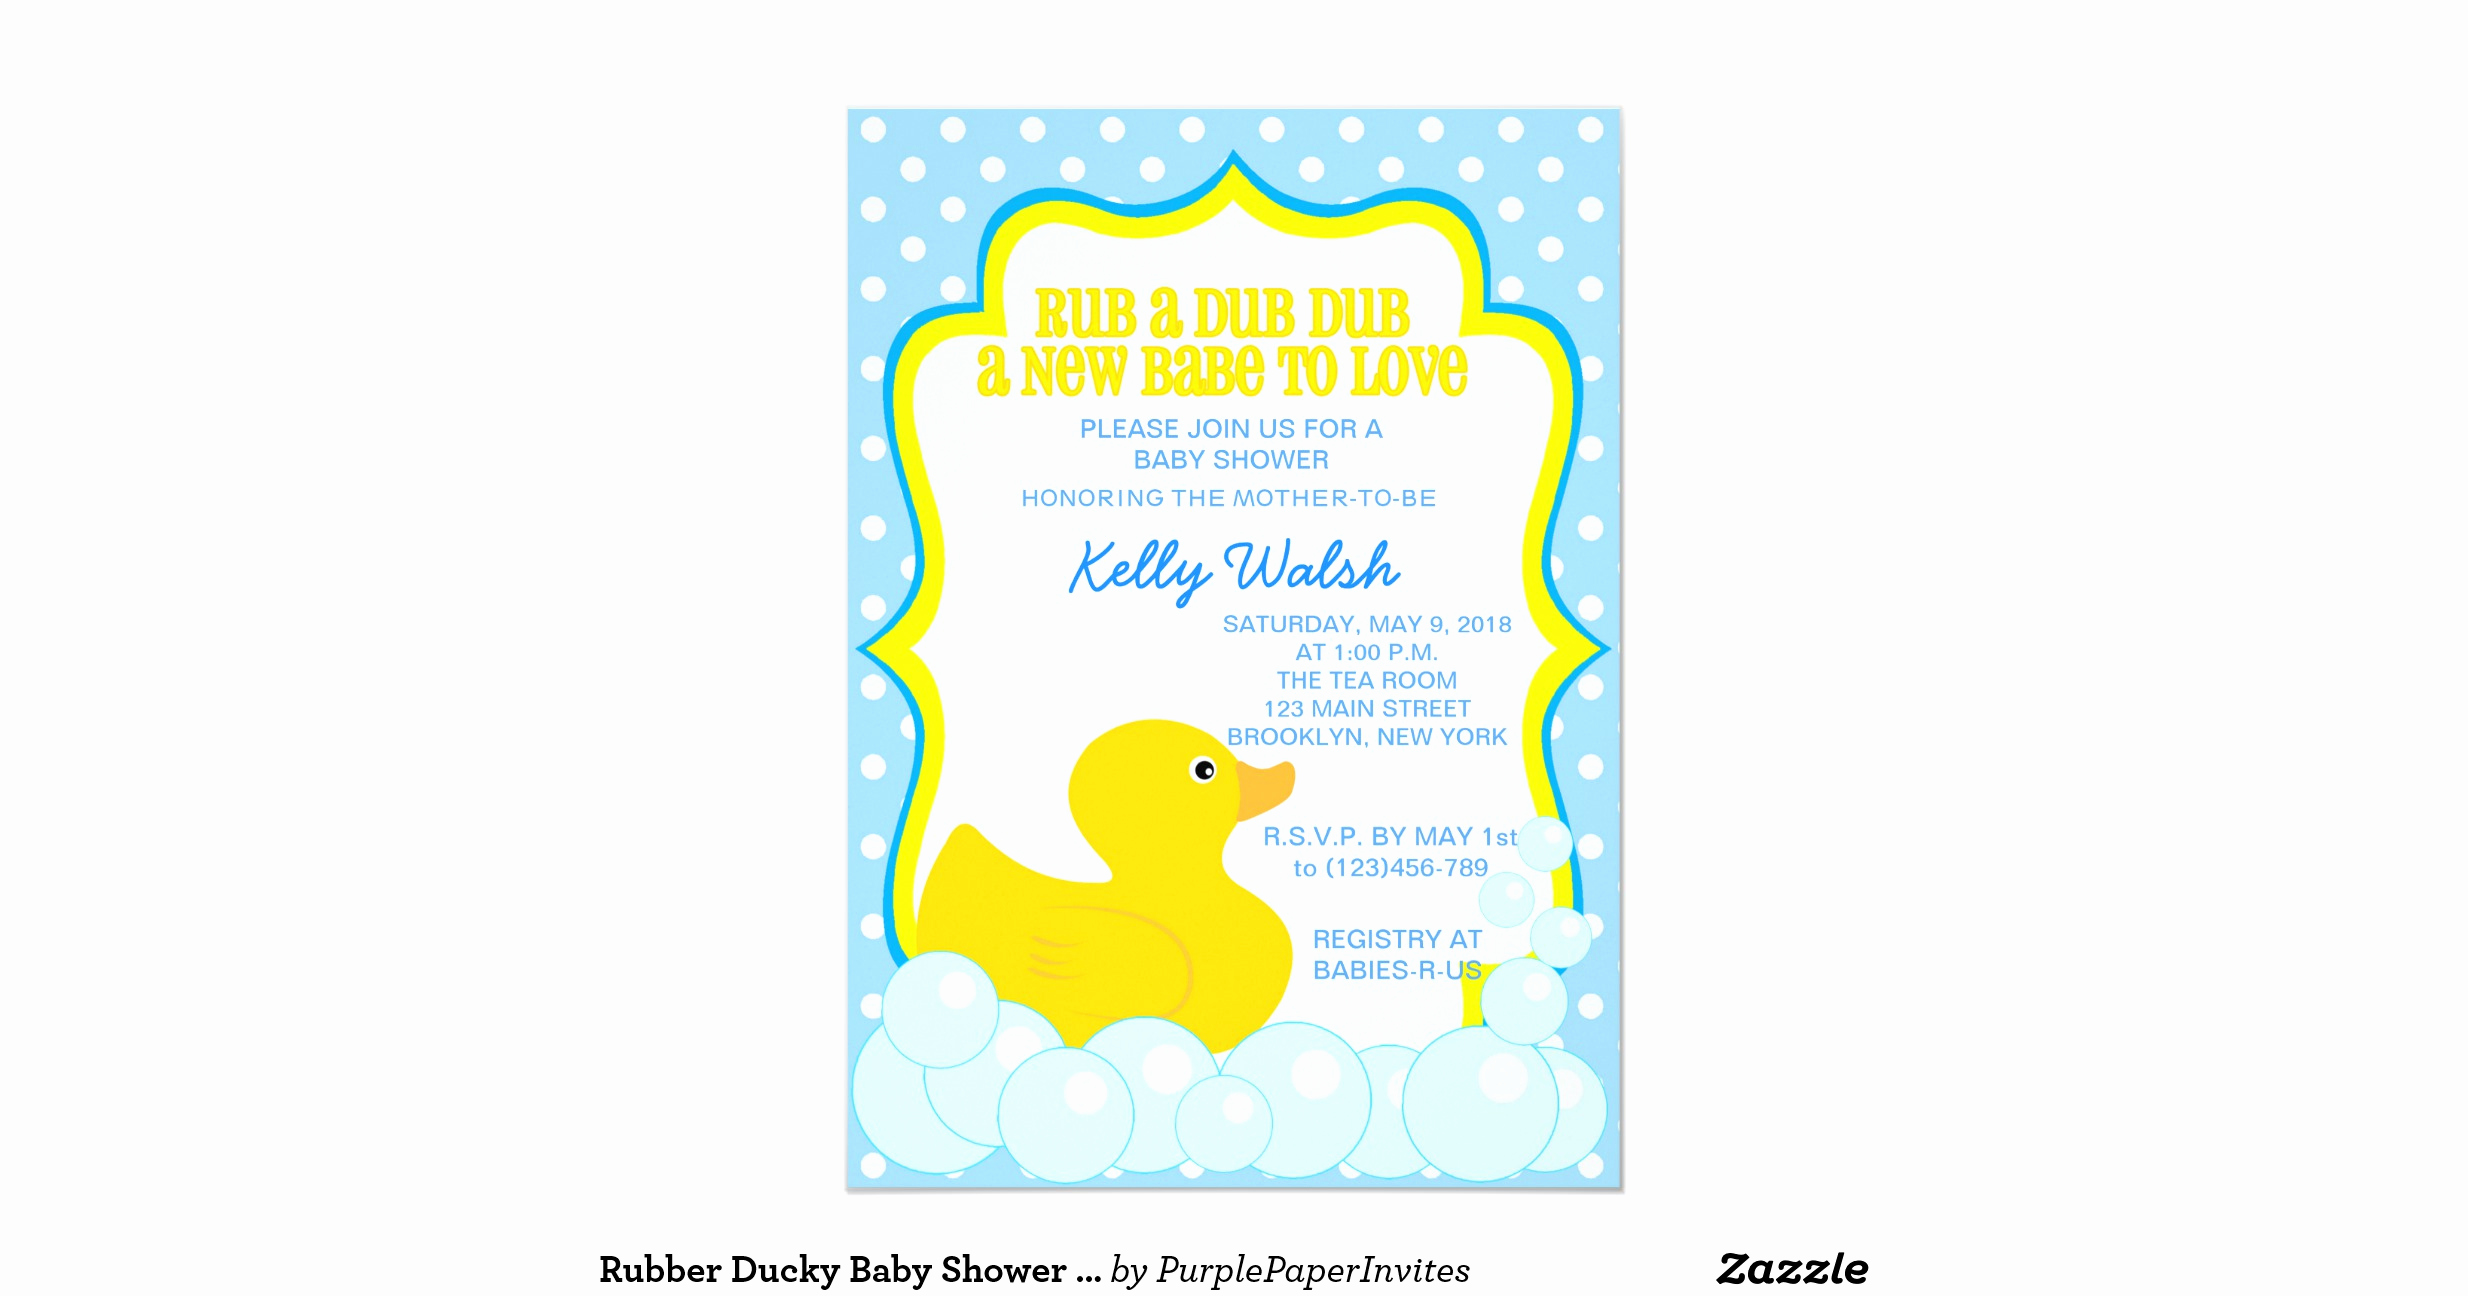 Rubber Ducky Baby Shower Invitation Fresh Rubber Ducky Baby Shower Invitations